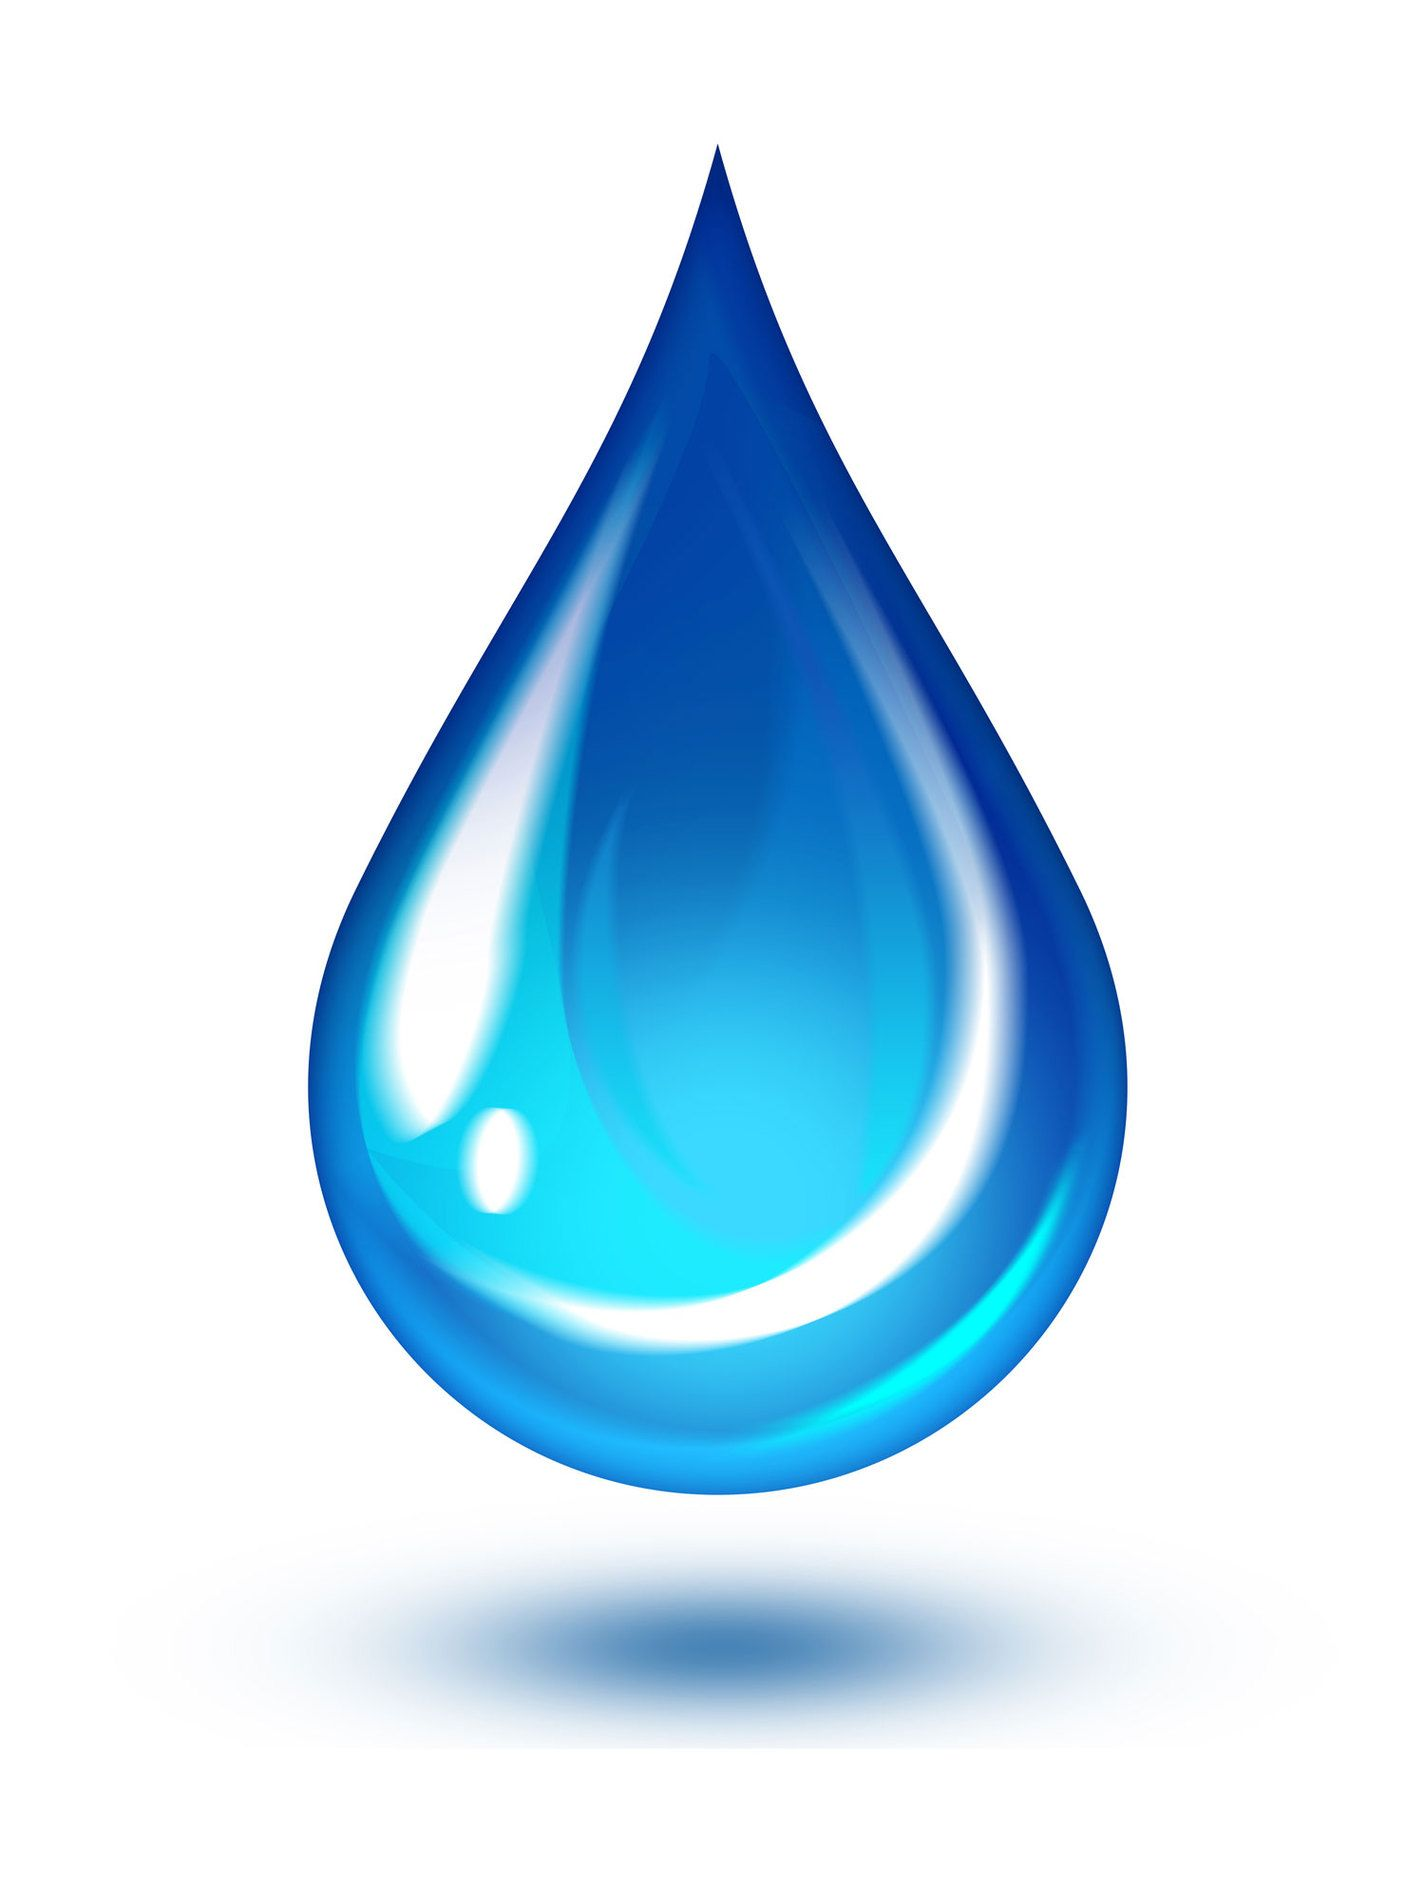 Water clipart logo. Drop symbol free to